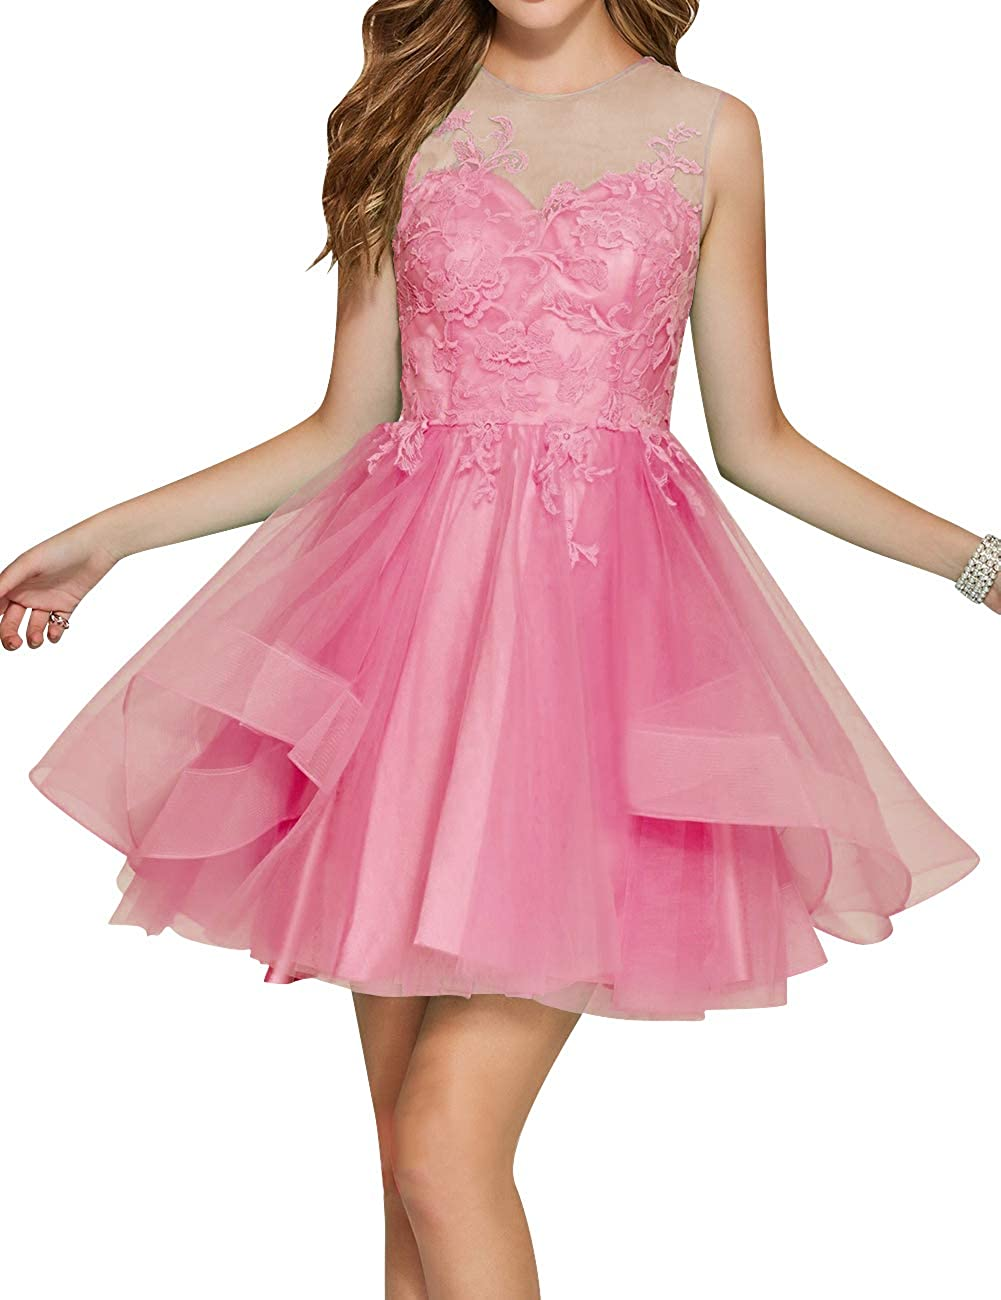 Deep Pink Uther Junior Tulle Prom Homecoming Cocktail Dresses Short Scoop Neck Bridesmaid Dress